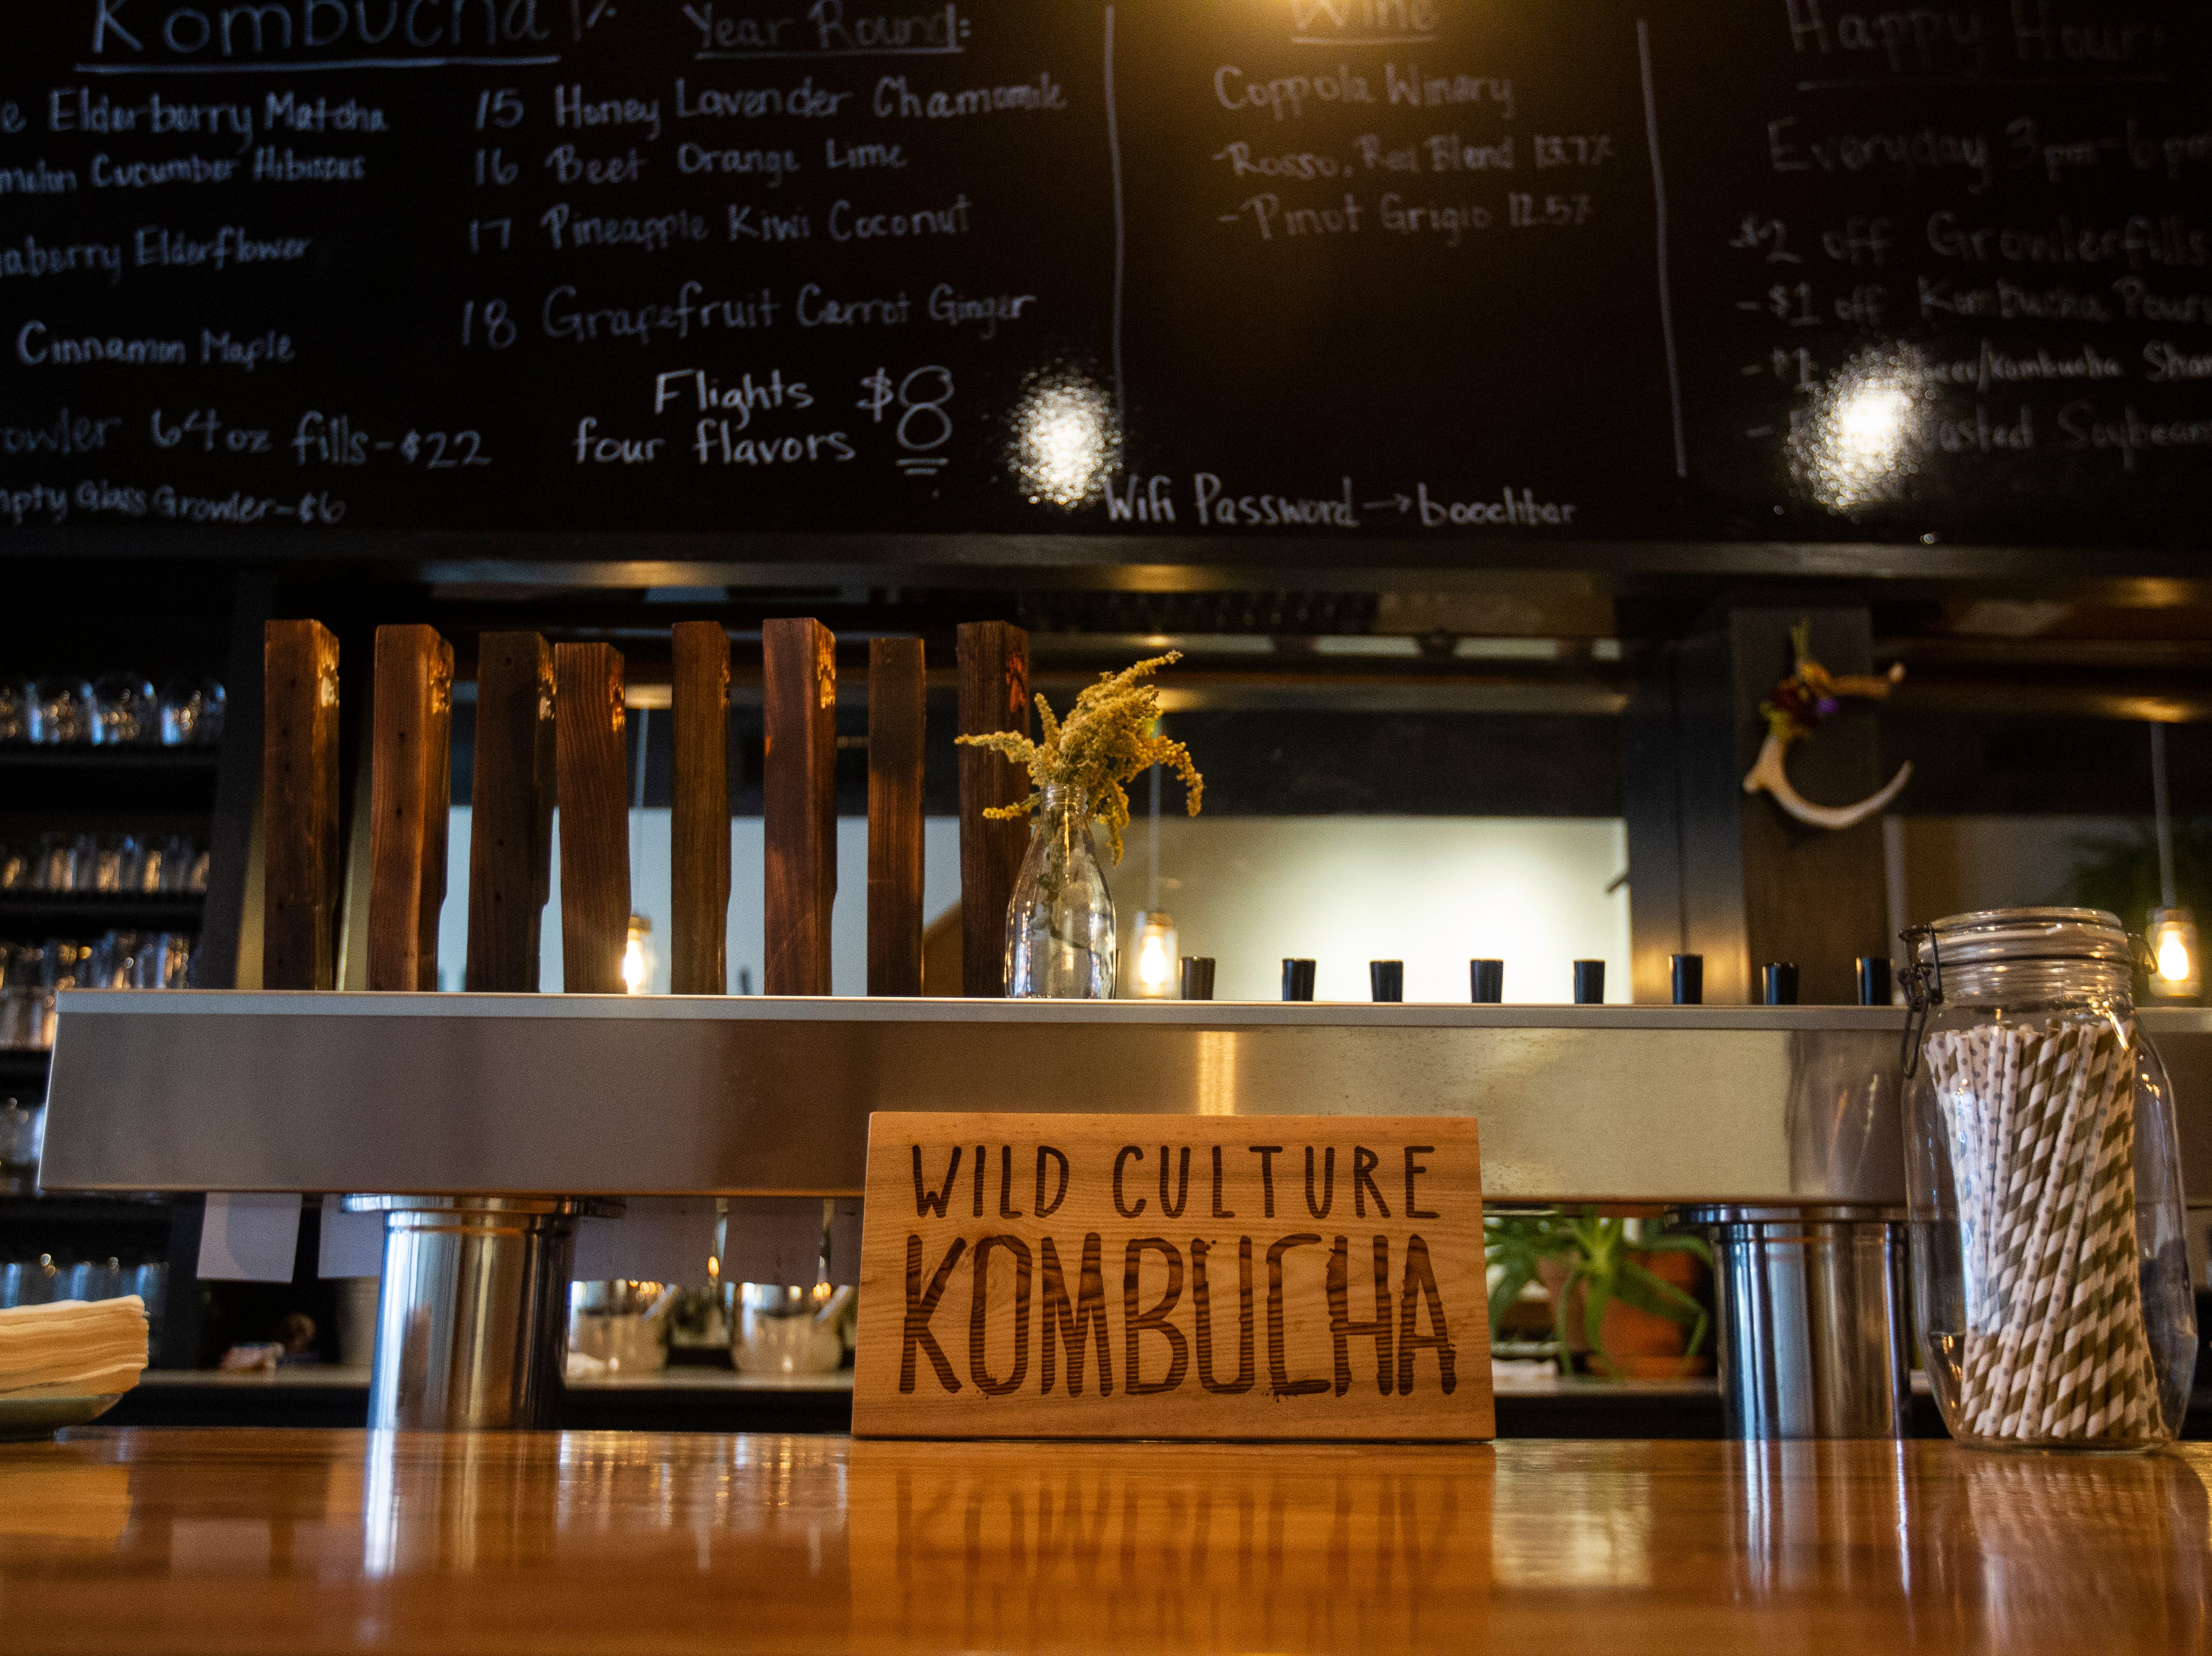 A sign rests on the bar in front of kombucha taps on Wednesday, Oct. 31, 2018, inside Wild Culture Kombucha in Iowa City.